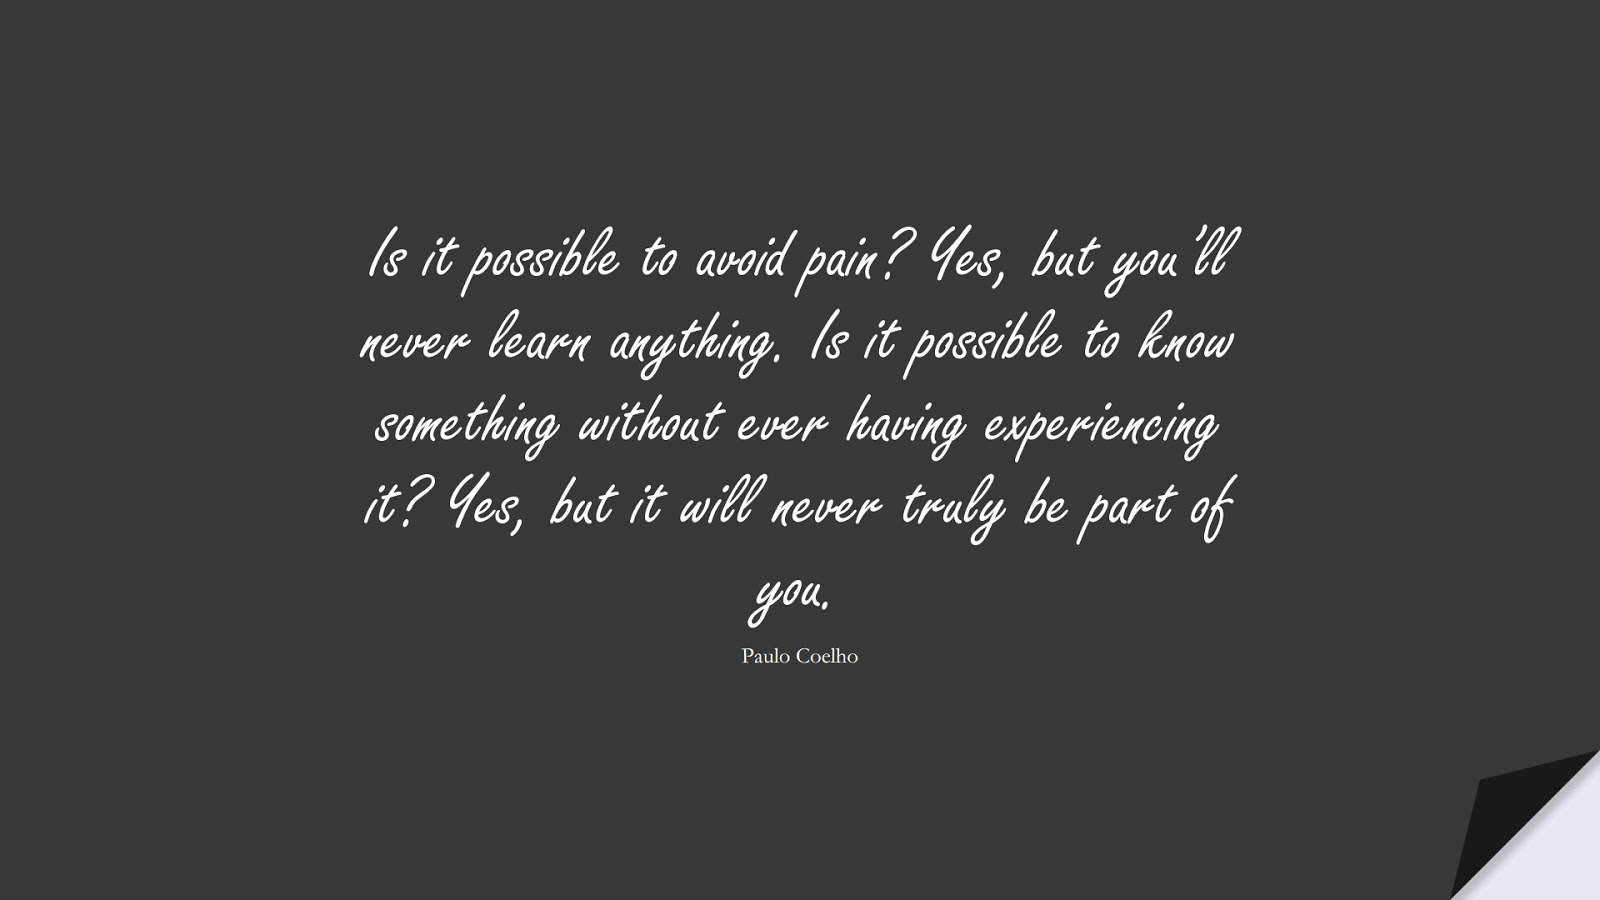 Is it possible to avoid pain? Yes, but you'll never learn anything. Is it possible to know something without ever having experiencing it? Yes, but it will never truly be part of you. (Paulo Coelho);  #BeingStrongQuotes